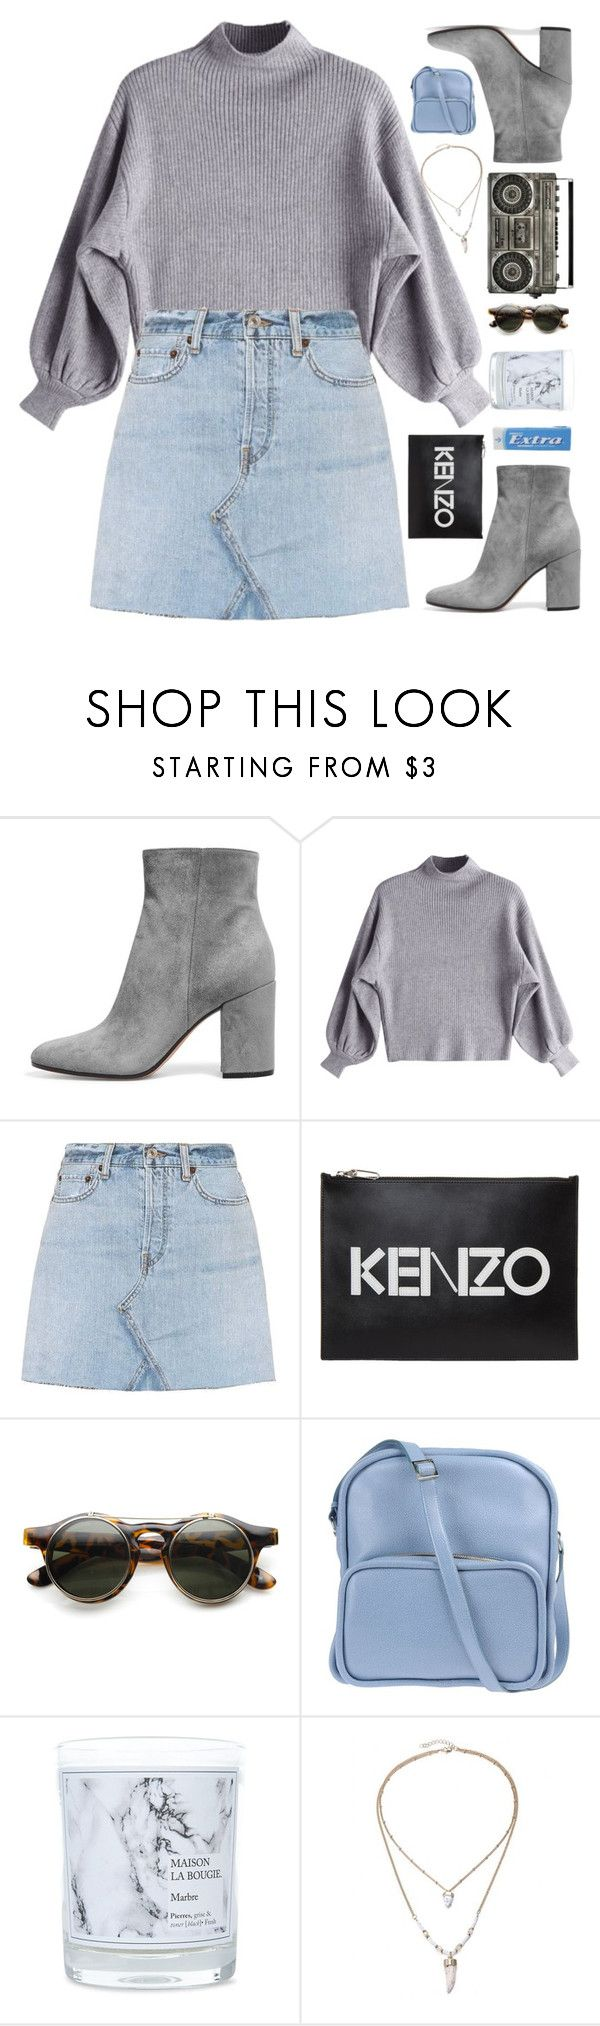 """•love me baby like you love the sea•"" by unicornonthecobb ❤ liked on Polyvore featuring RE/DONE, Kenzo, ZeroUV, Jil Sander Navy, Maison La Bougie and unicornonthecobb"